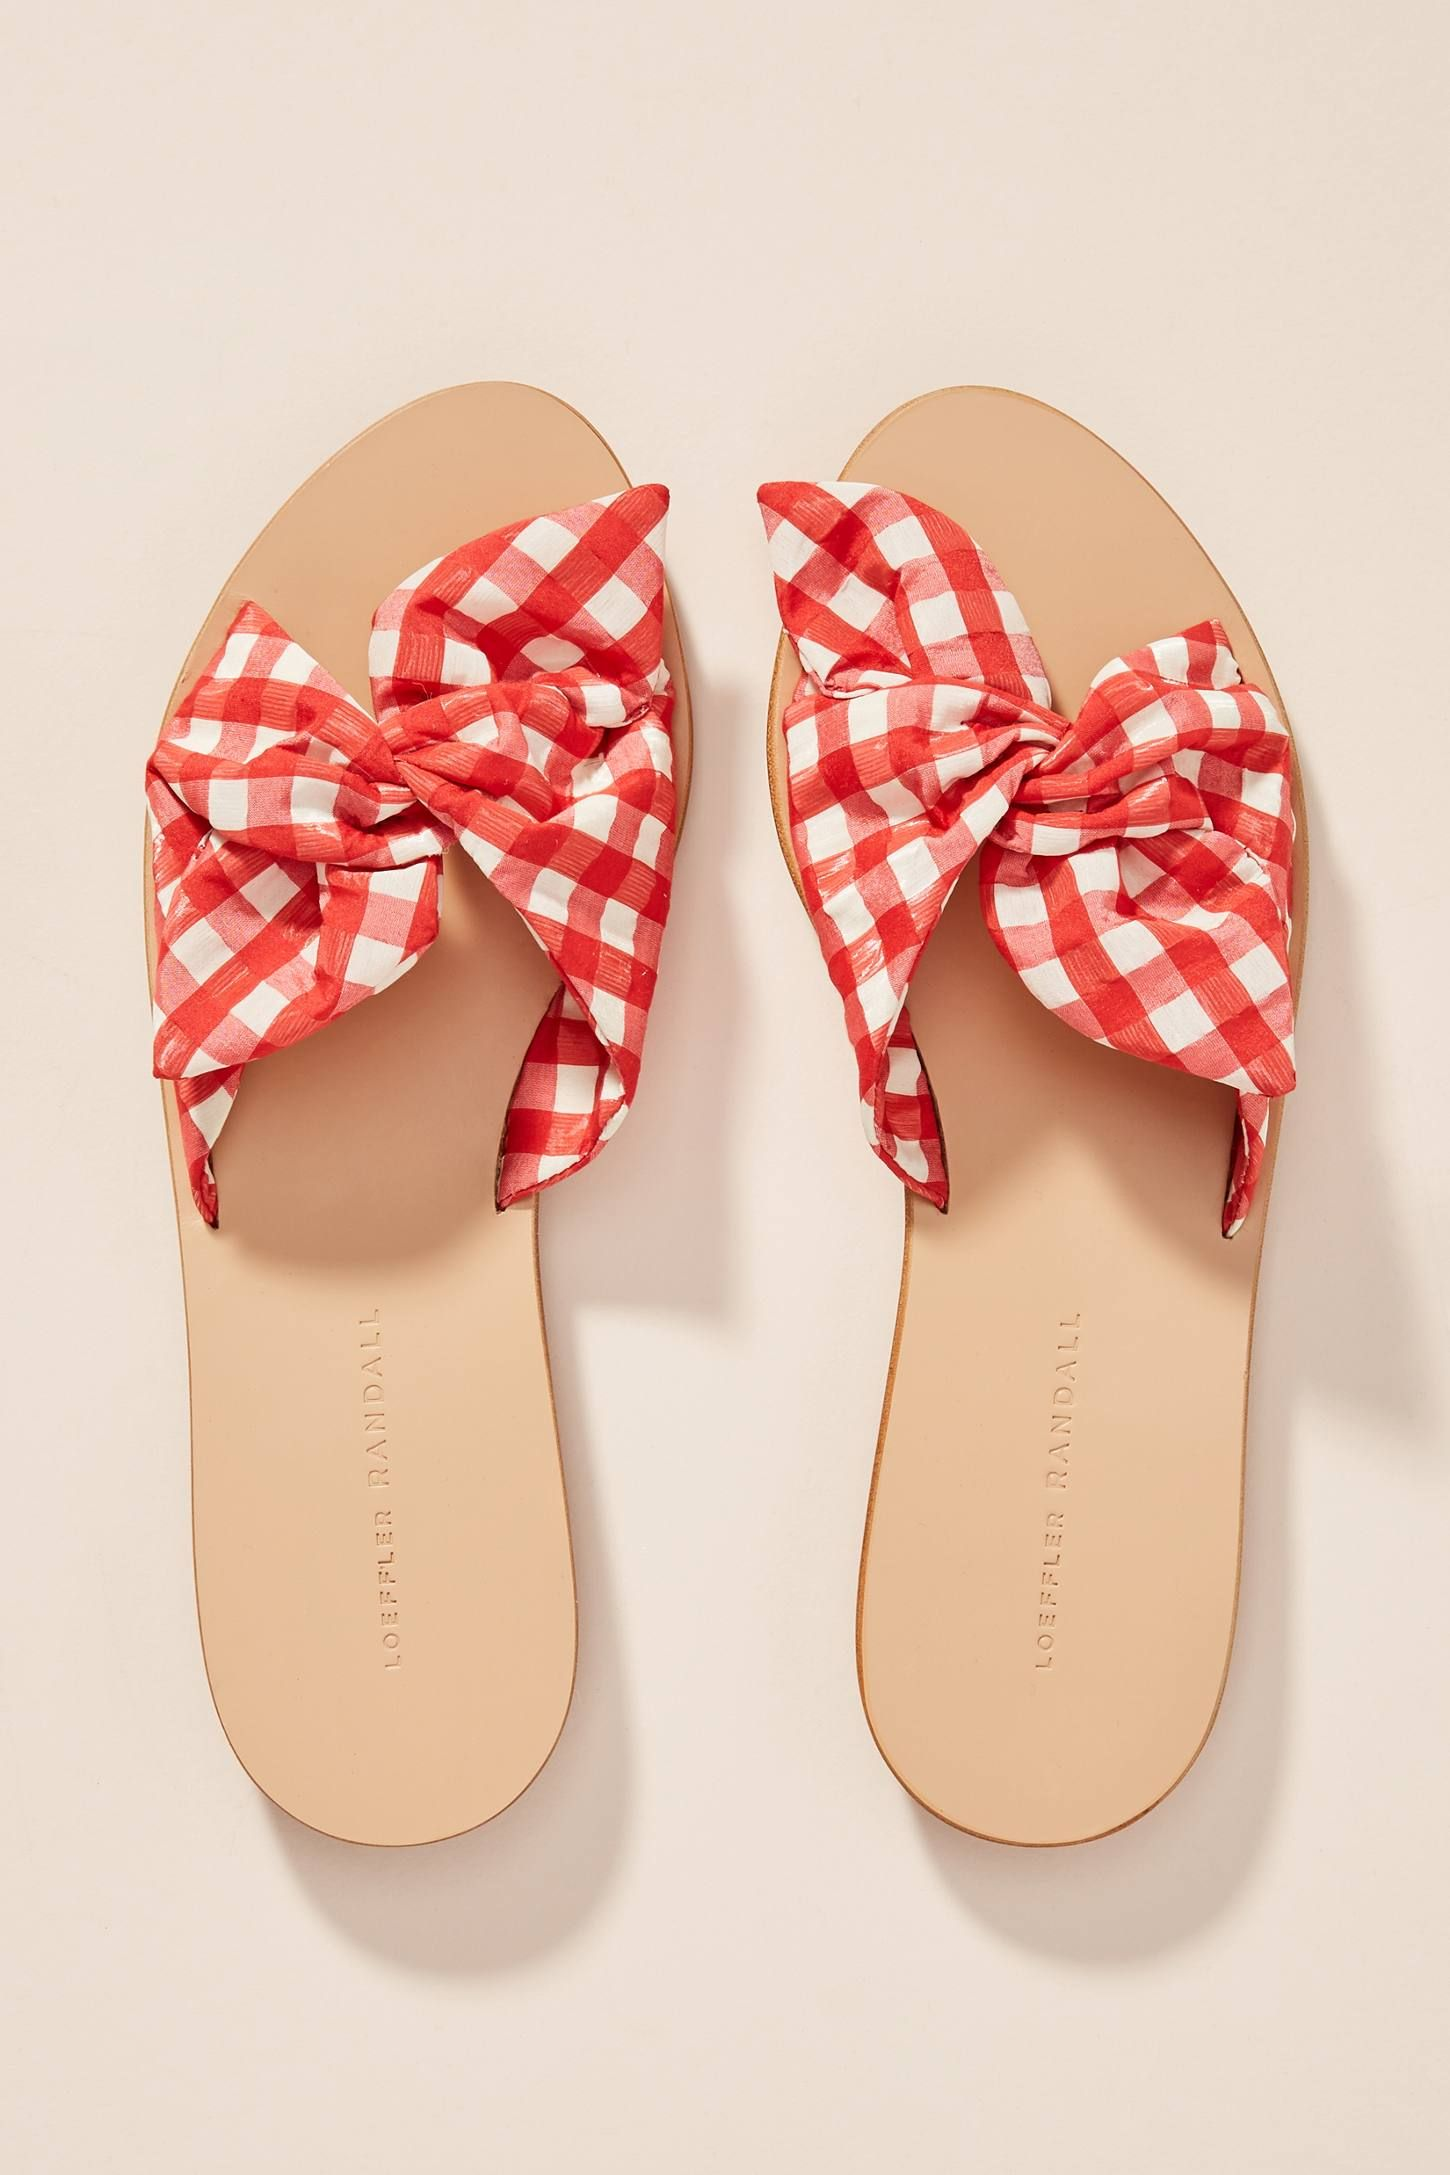 968cc611287c7e Red Gingham Knotted Slide Sandals